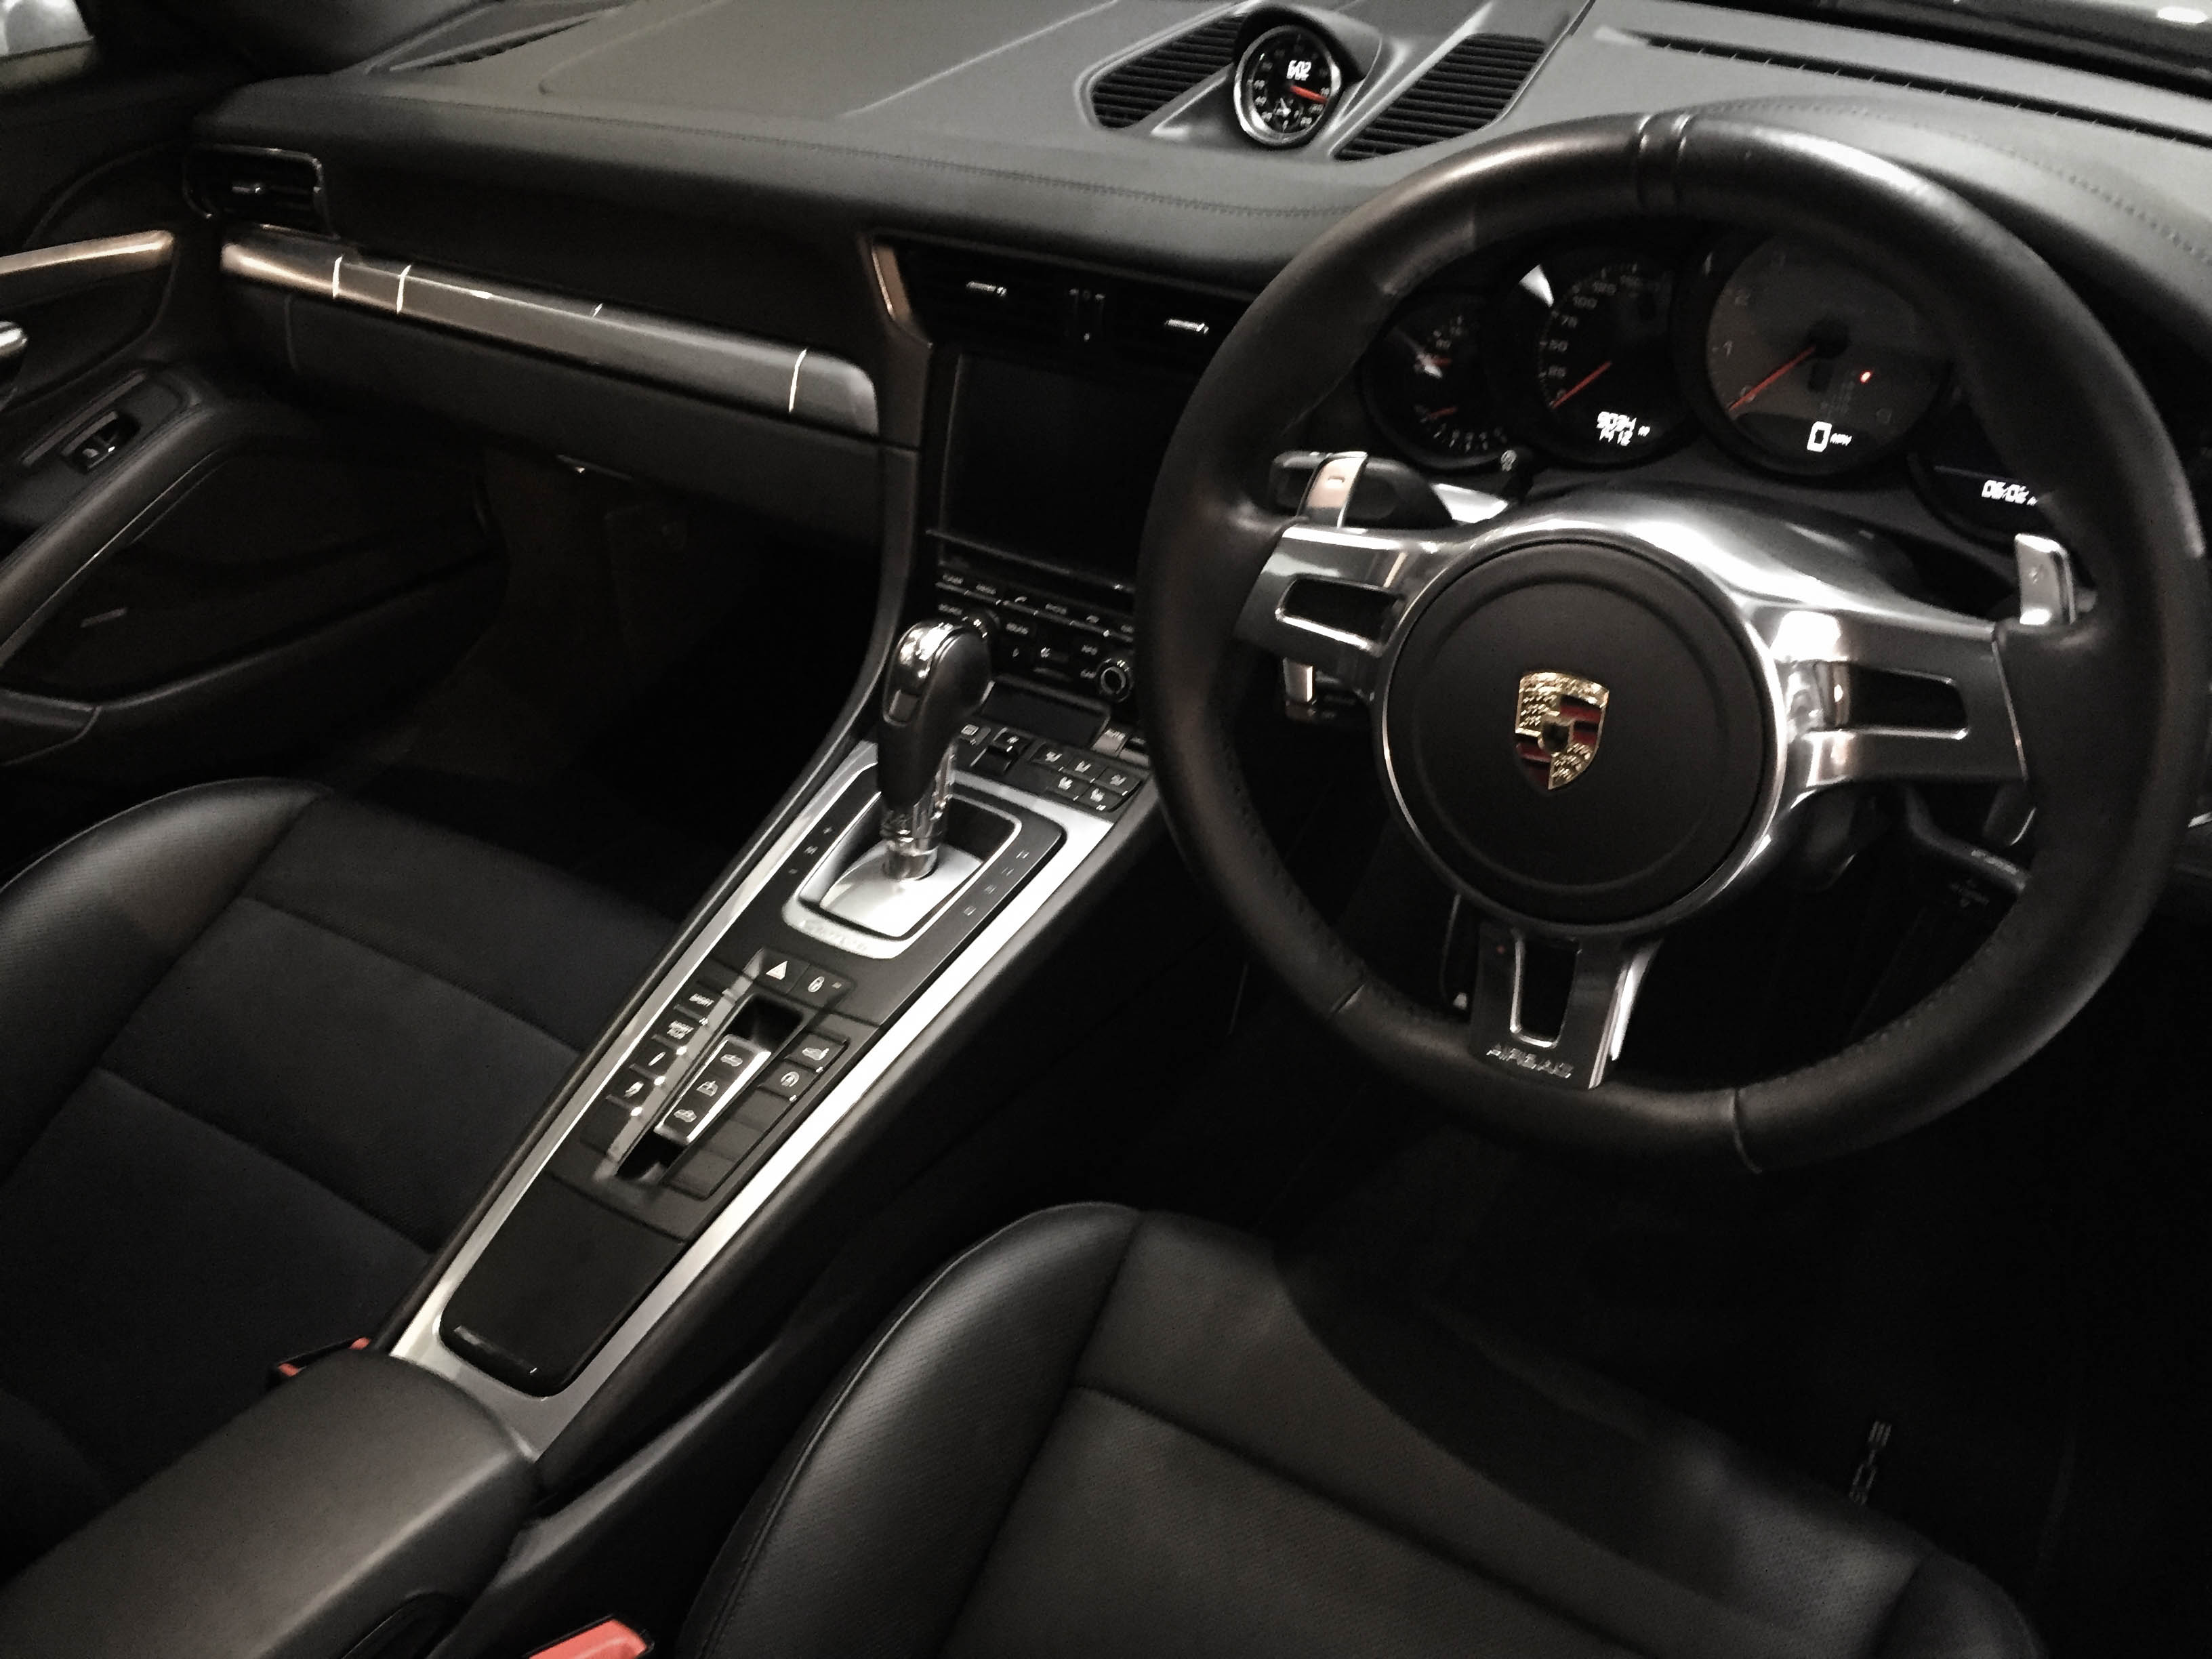 Porsche 911 Carrera – Interior